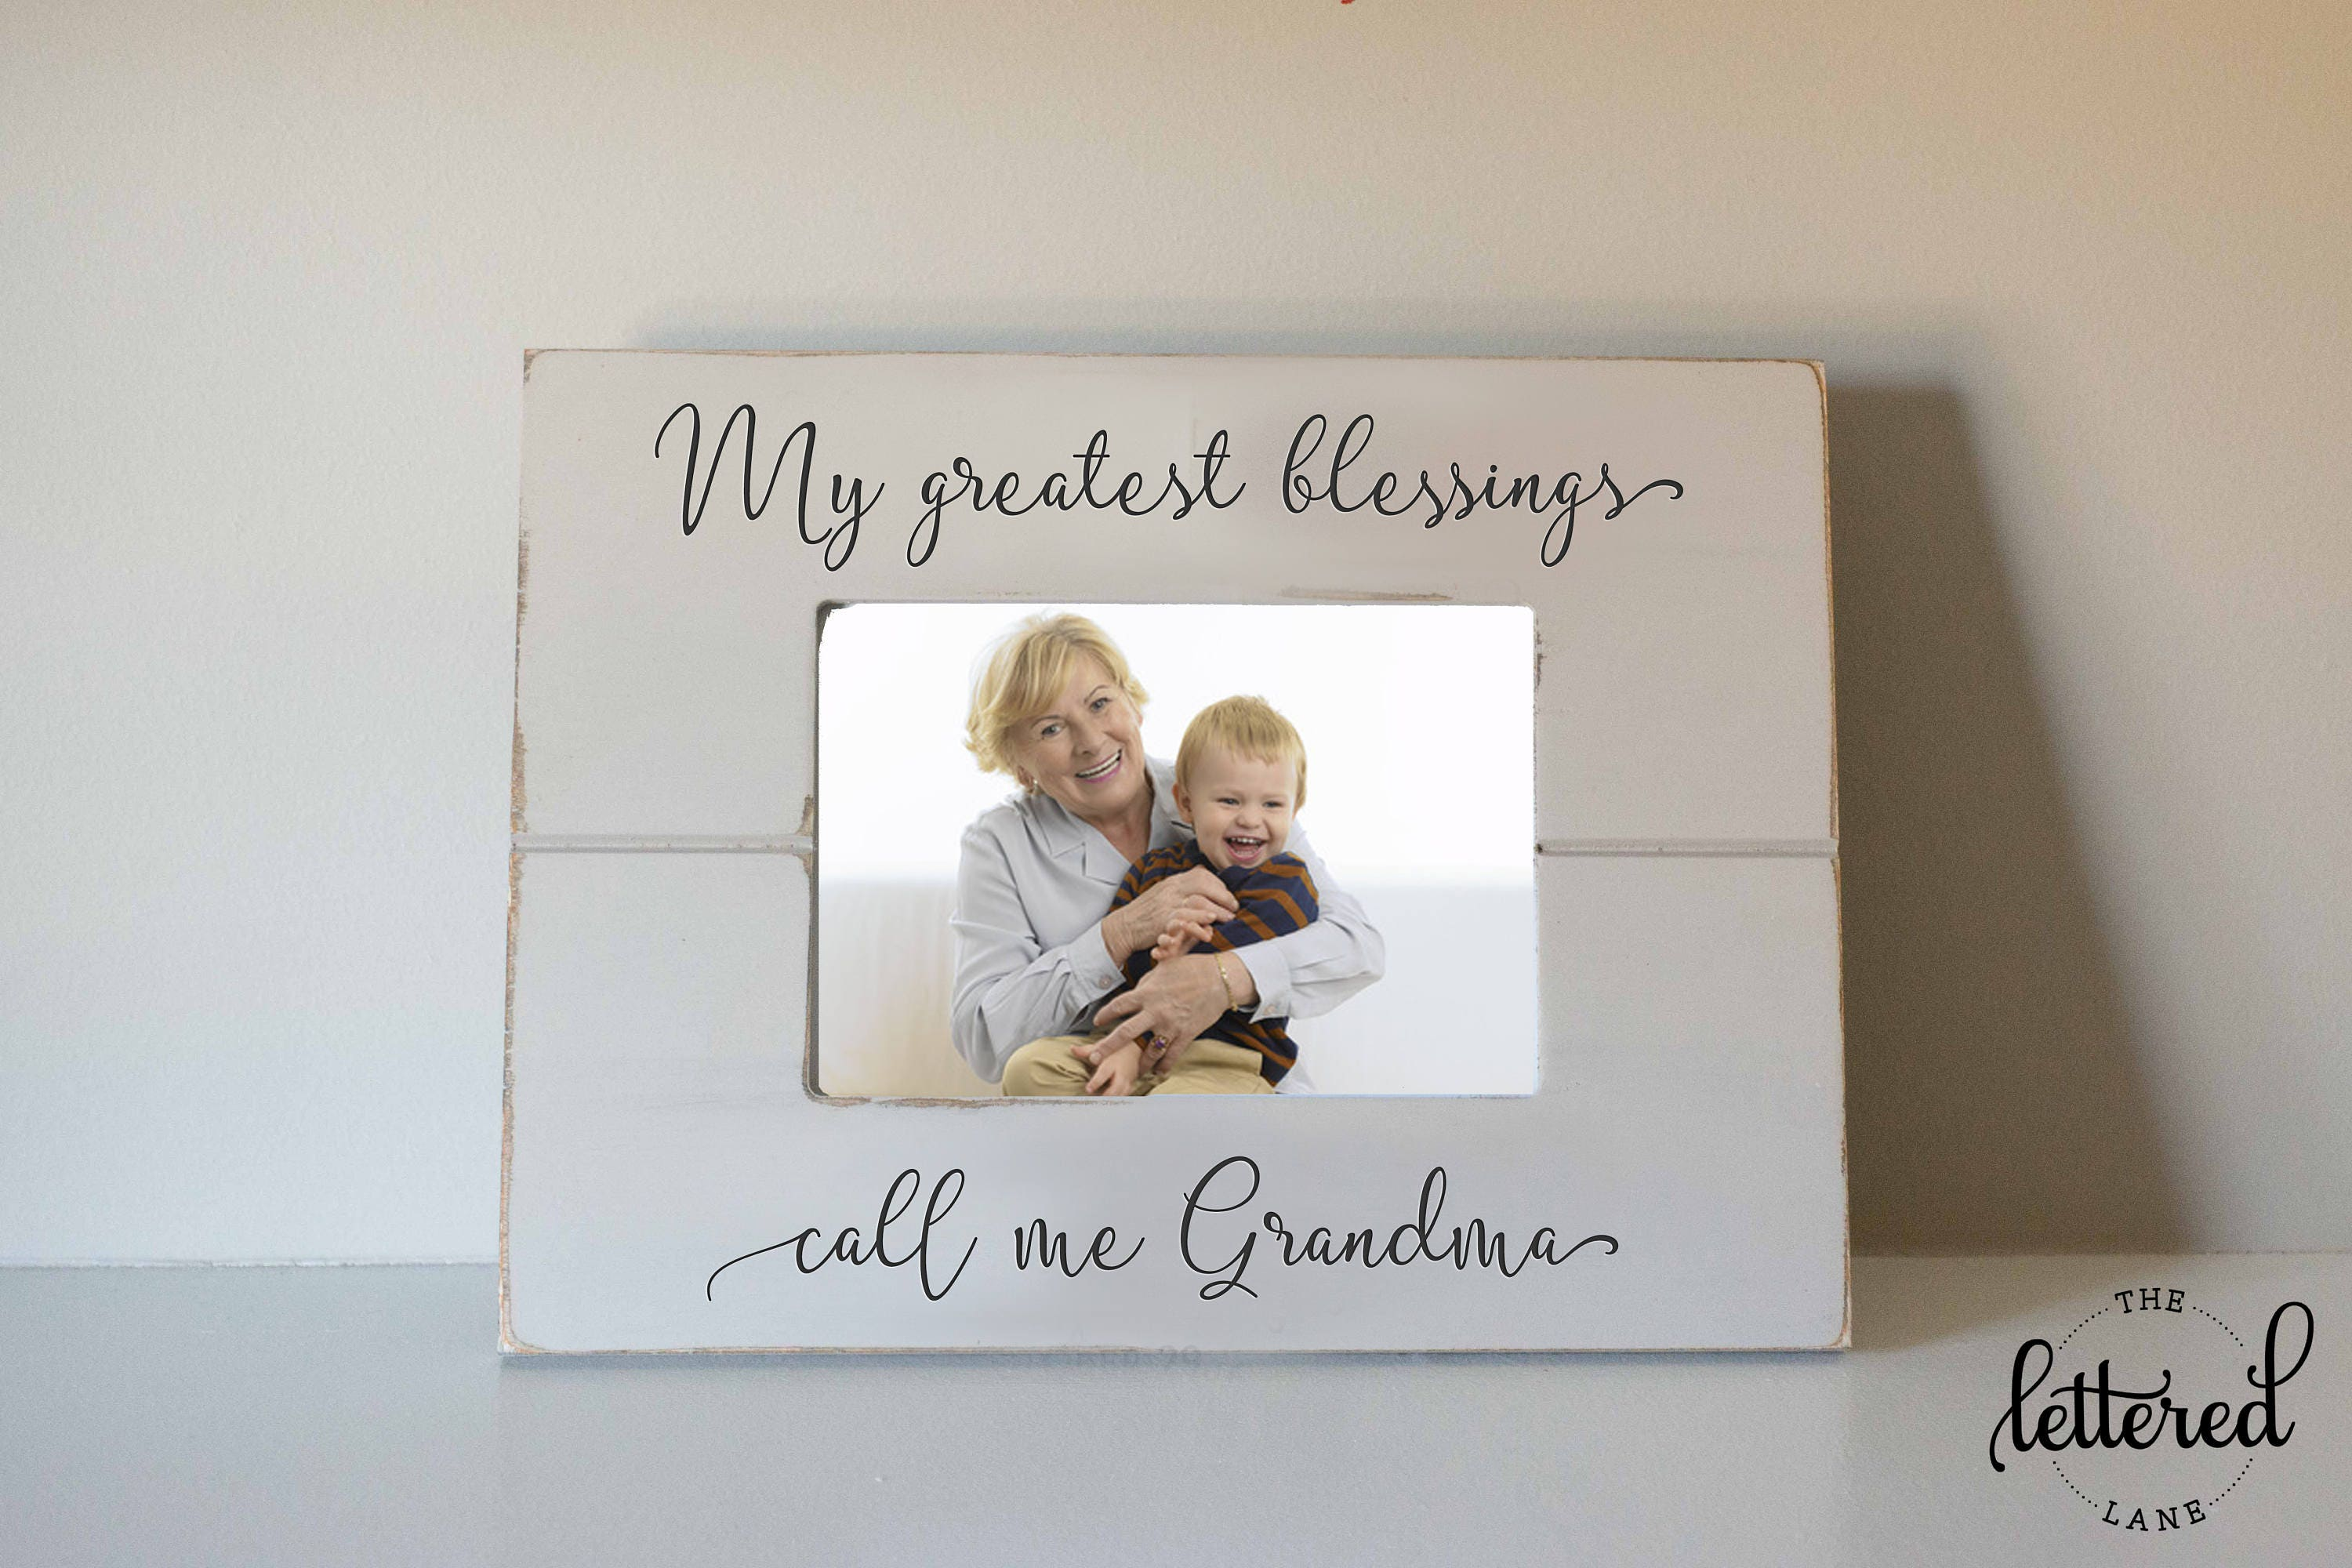 Grandma picture frame gift Greatest Blessings call me | Etsy